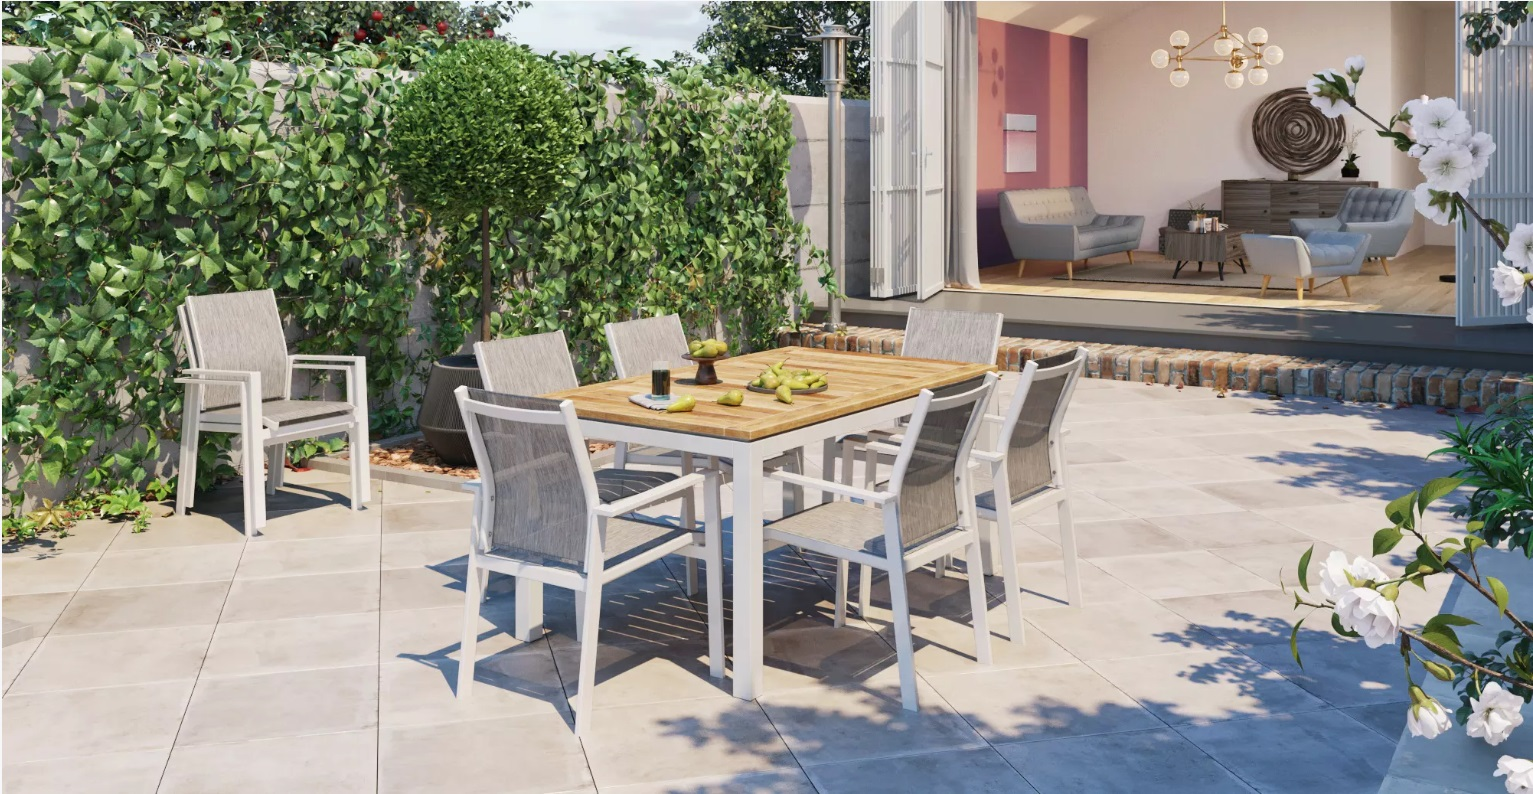 A timber outdoor dining set